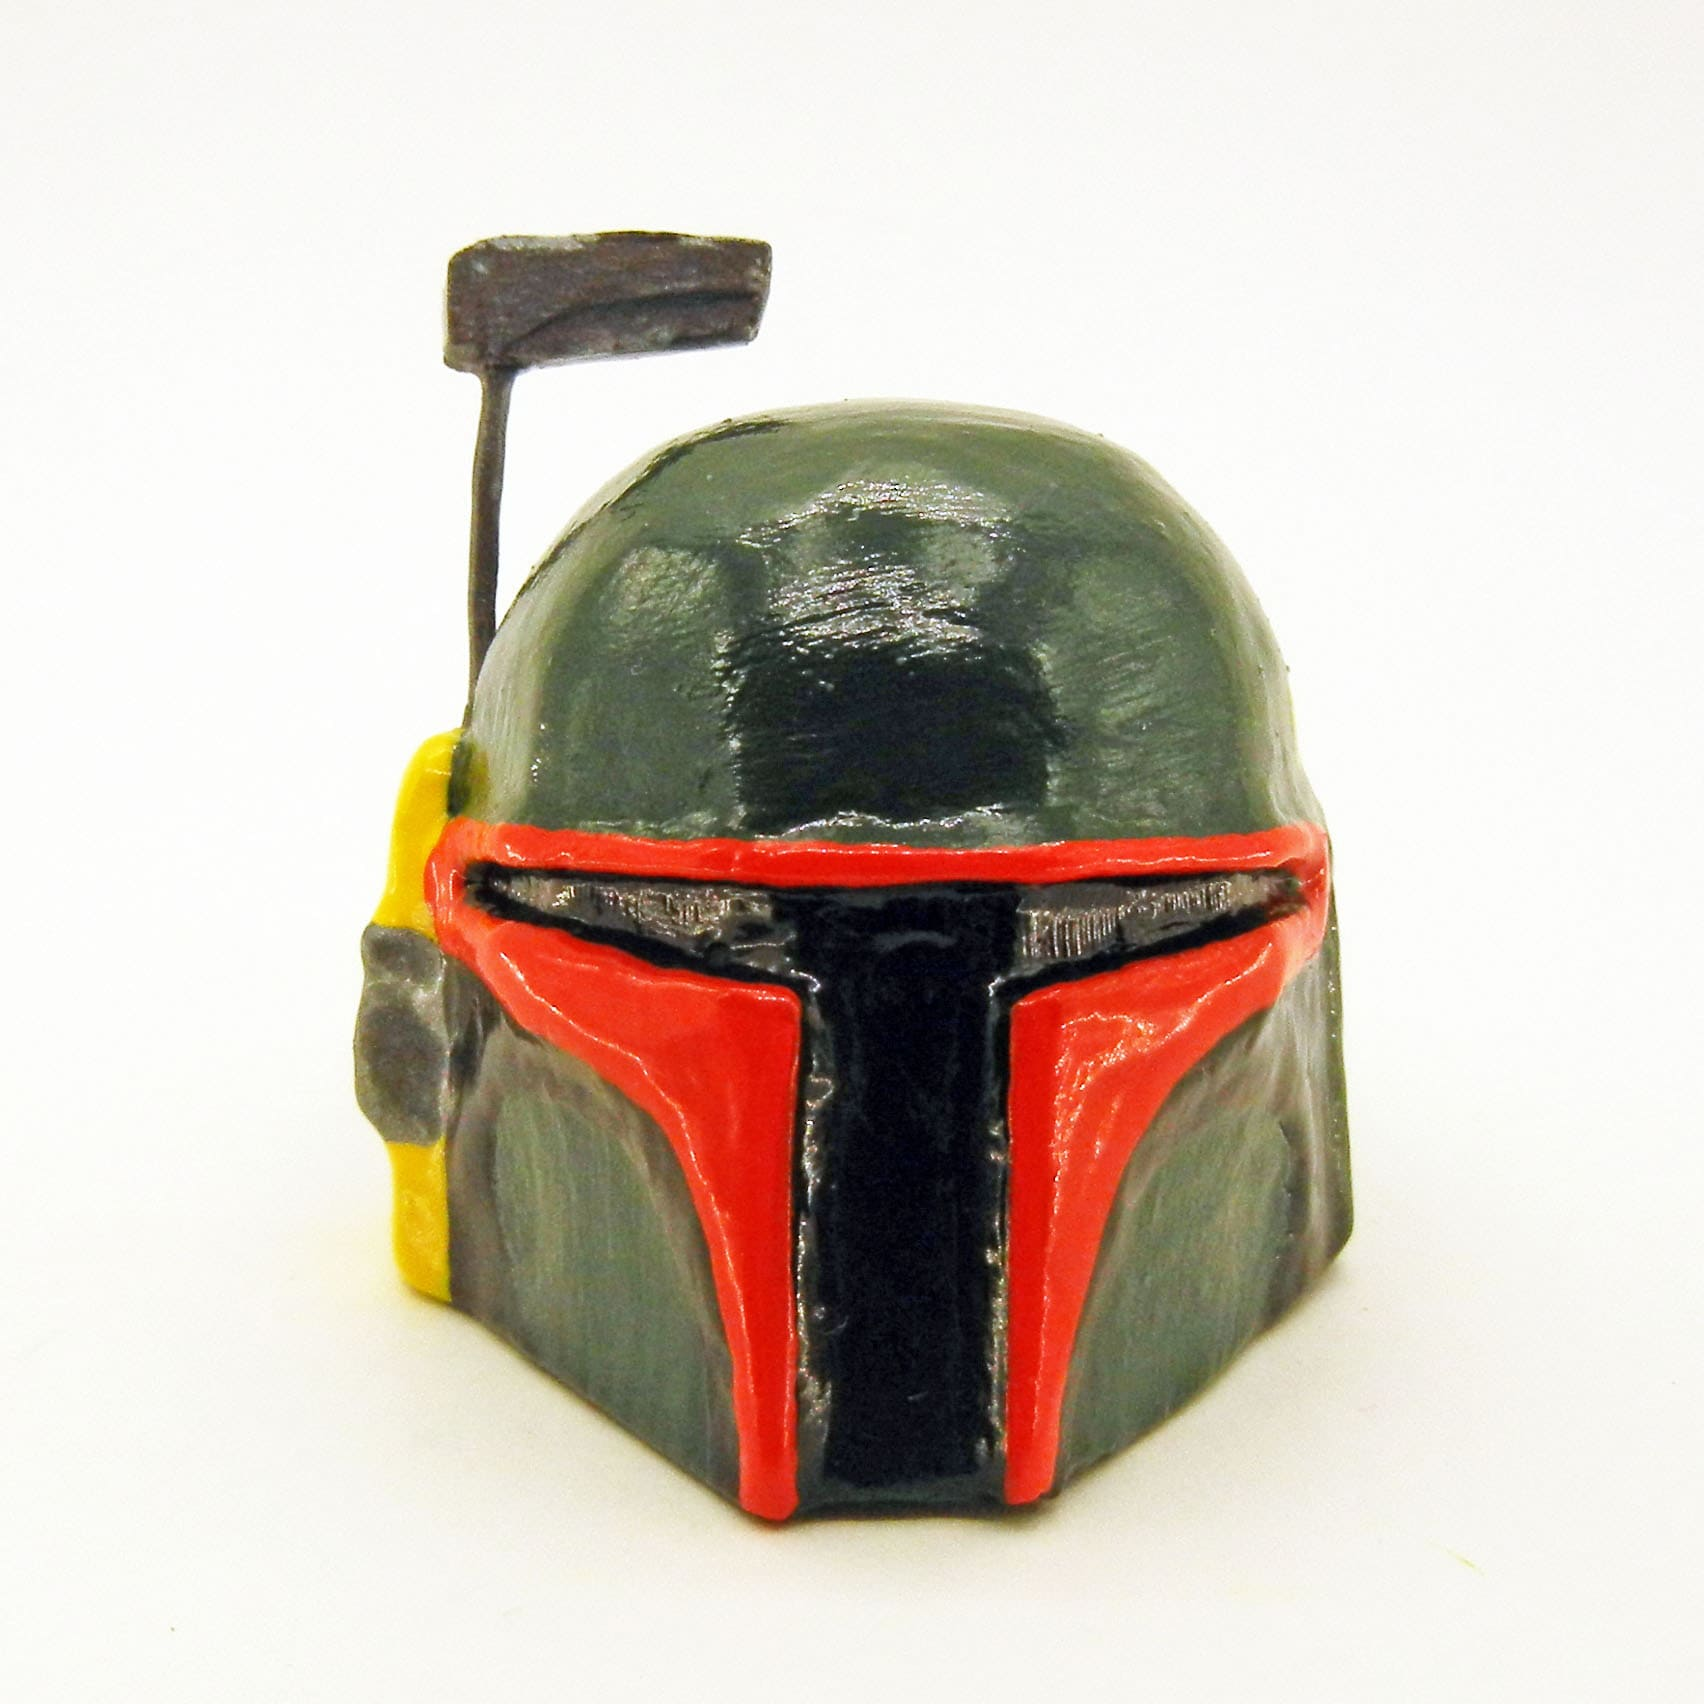 Boba Fett Helmet Furniture Knob ~ compatible with dressers, drawers, cabinets, closets / Star Wars decor for bedroom, bathrooom, kitchen, living room, office